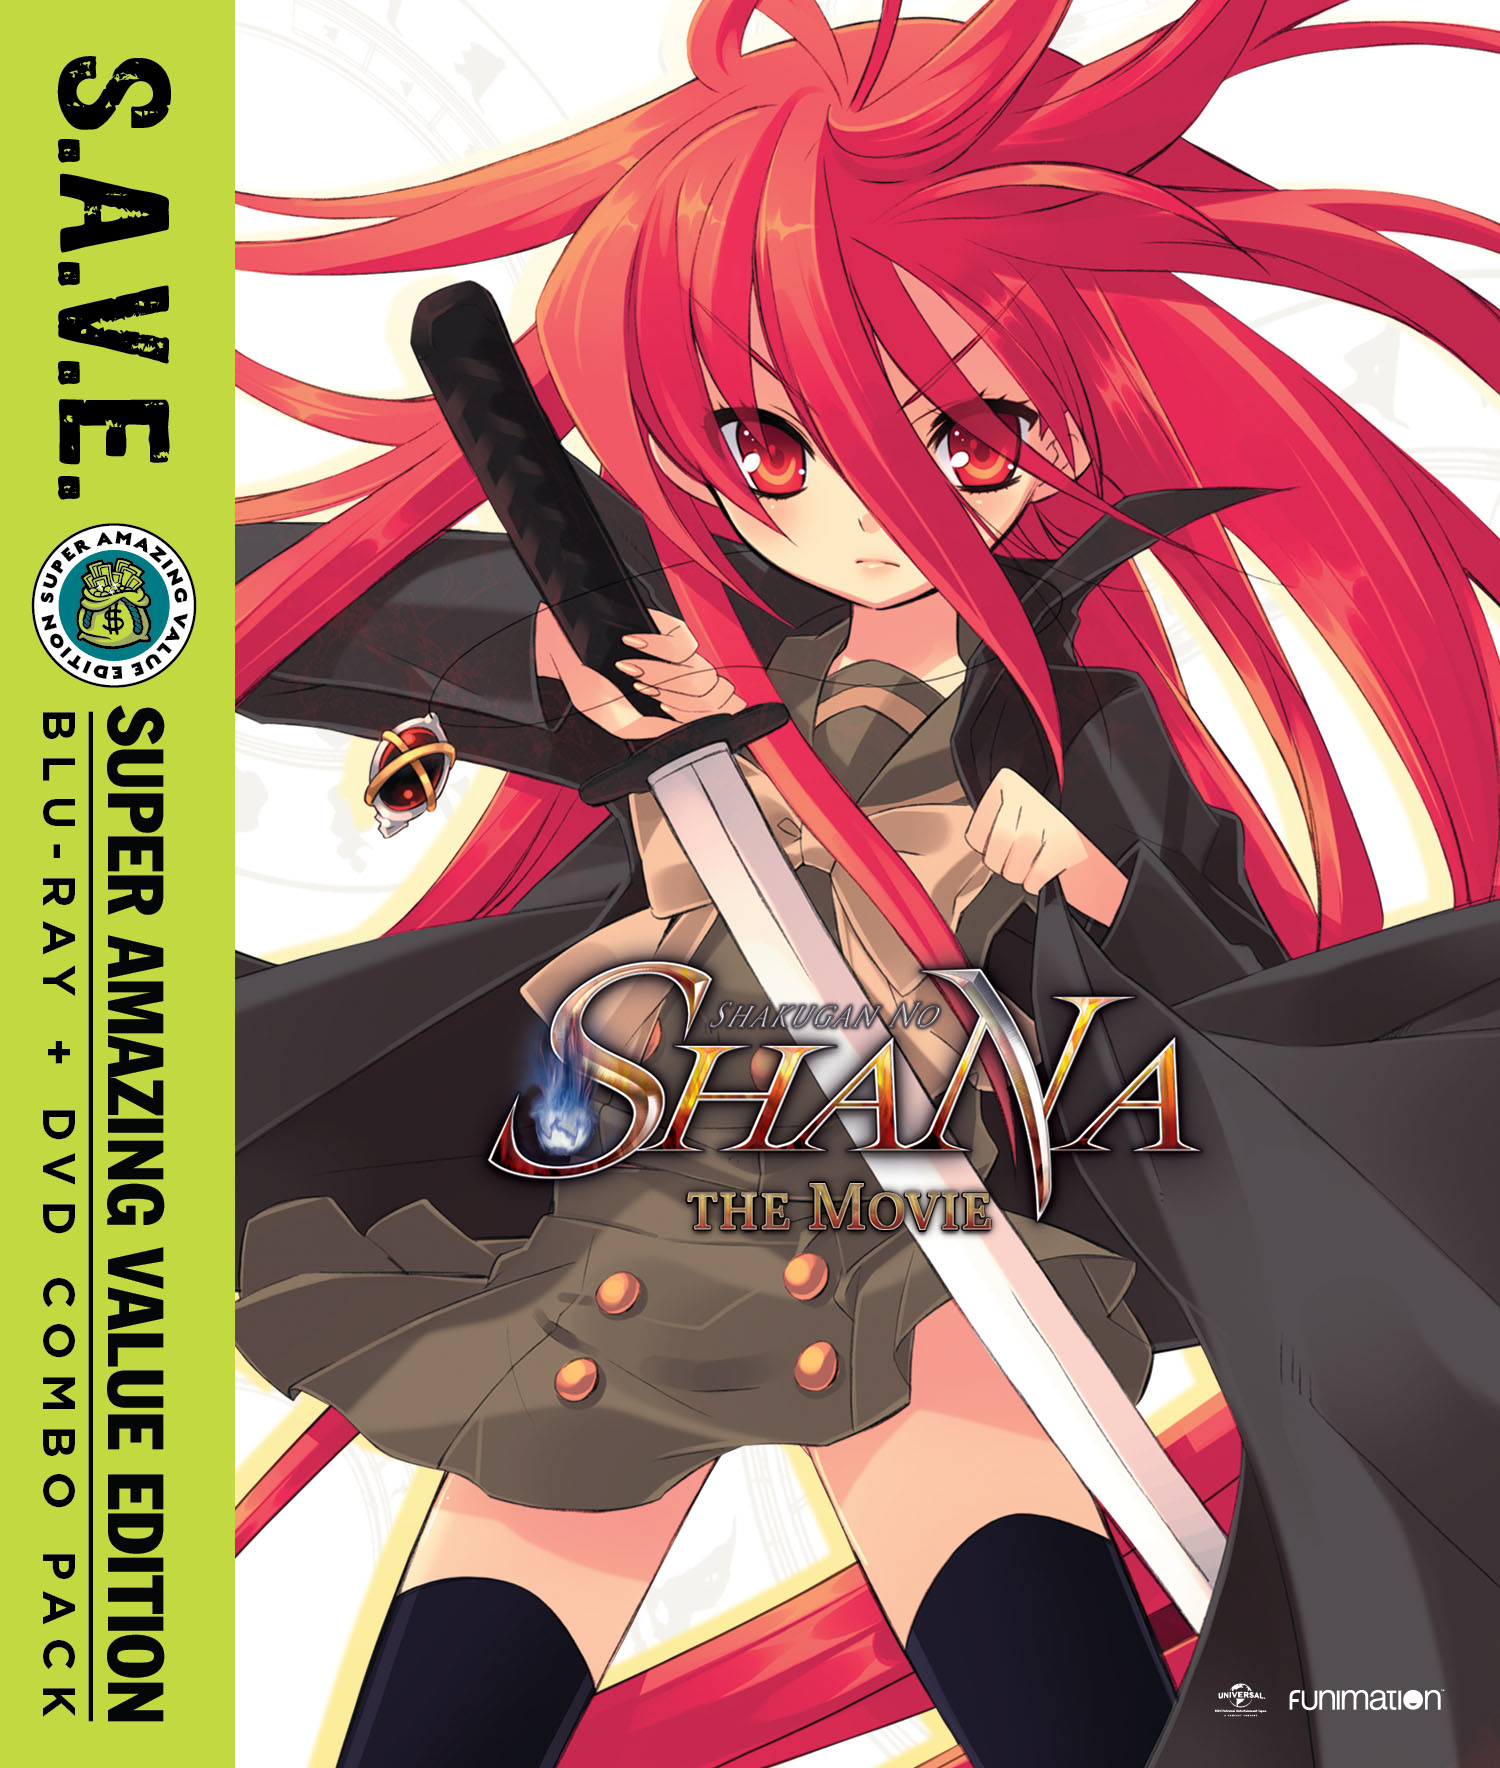 Shakugan no Shana The Movie Blu-ray/DVD SAVE Edition 704400090882